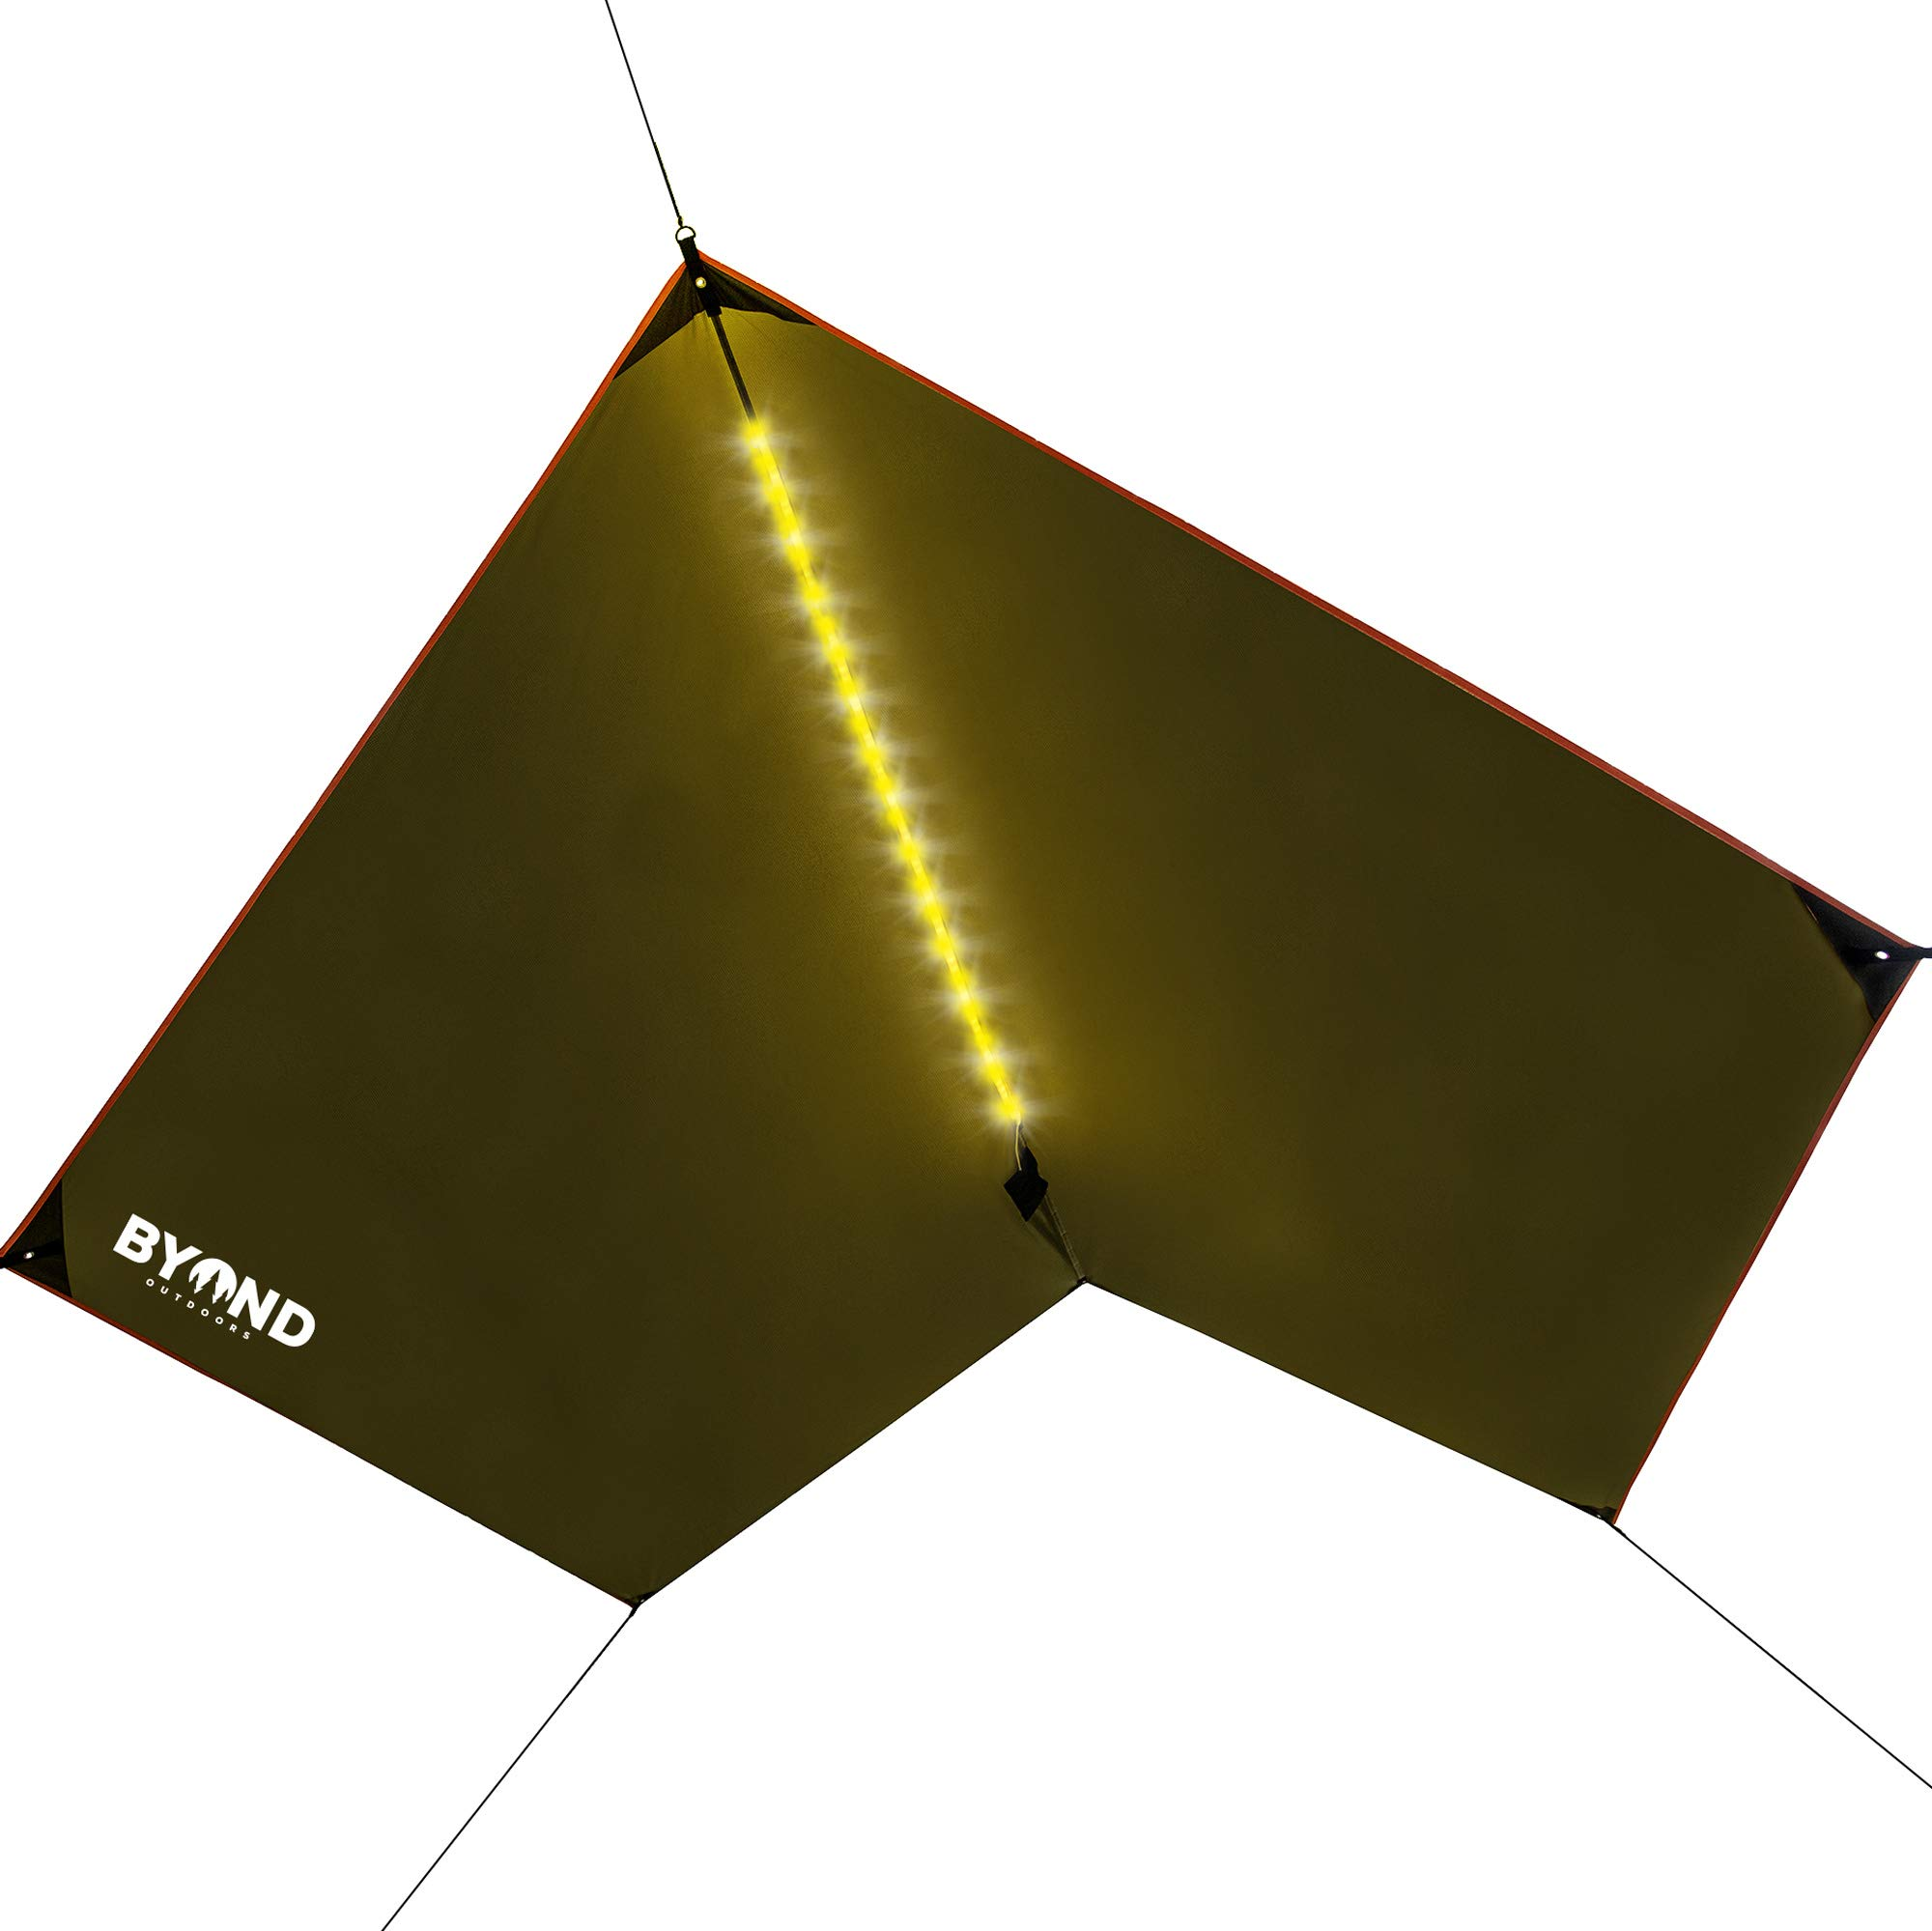 BYOND Rain Fly Hammock & Tent Tarp + Unique Velcro LED Strip - Waterproof Camping Travel 11.5 x 10 ft Tarp for Outdoor Portable and Practical Nature Shelter Extra-Durable (Rain Fly - Army Green) by BYOND